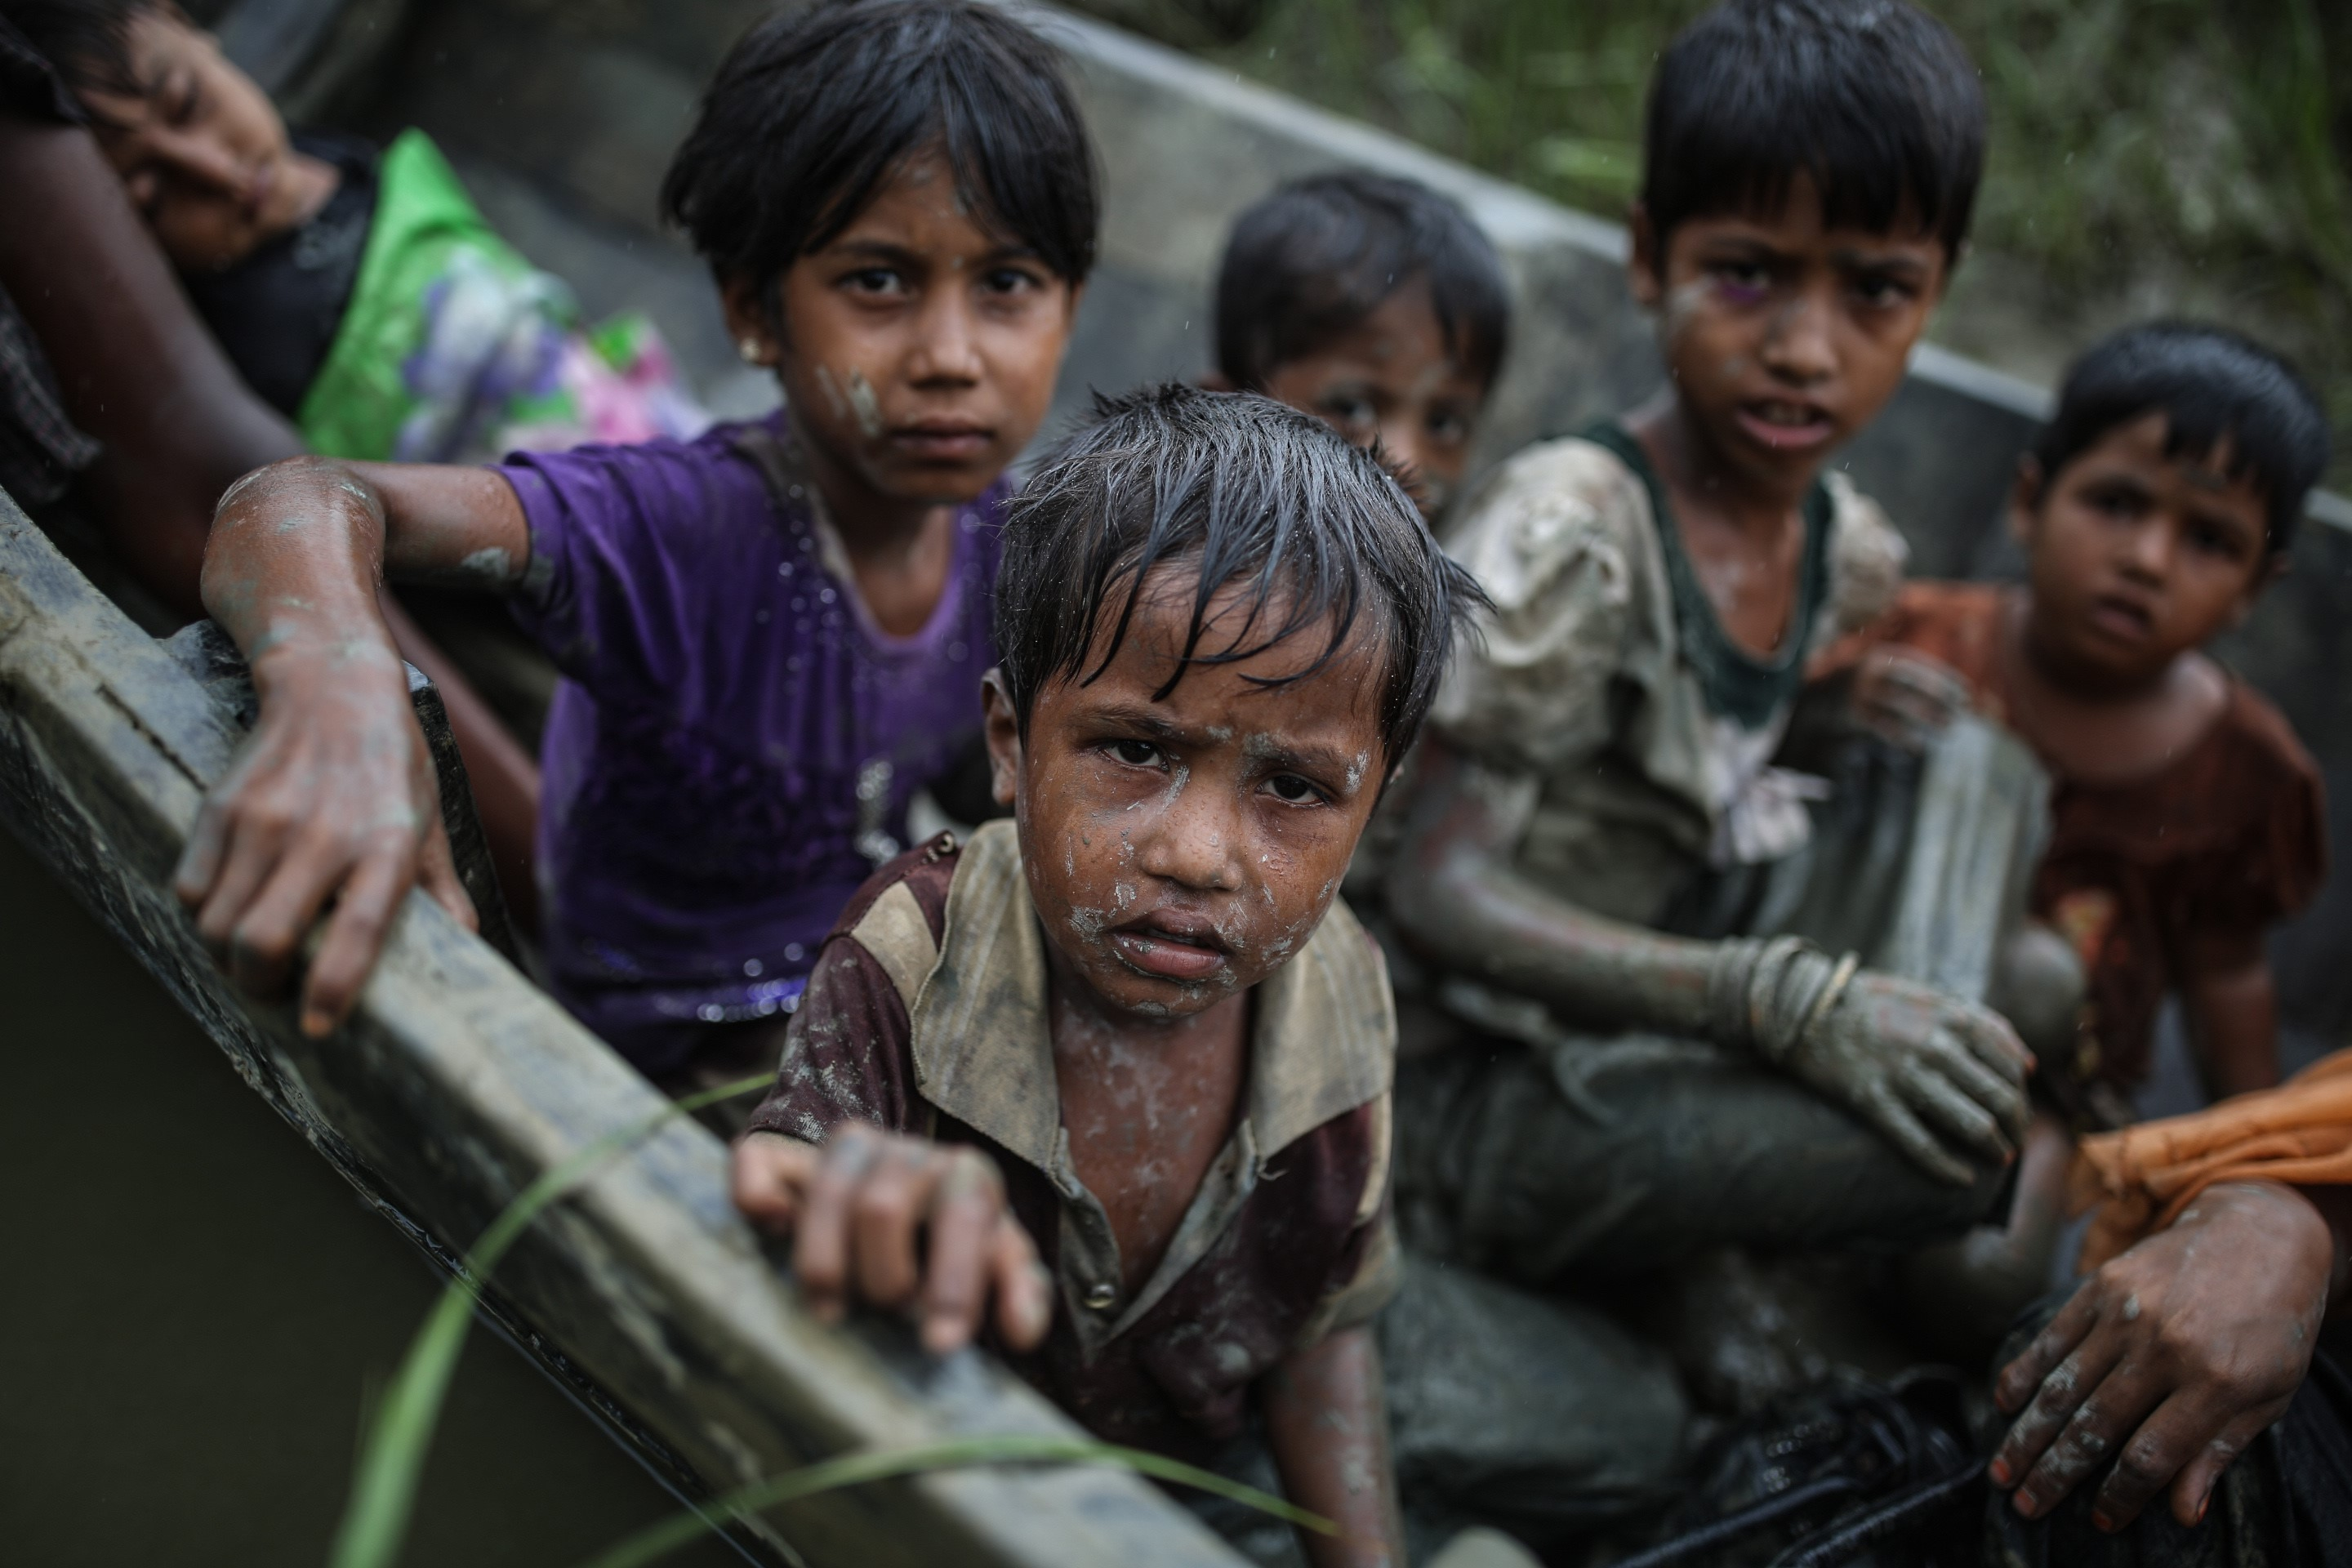 UN seeks 'massive' help for Rohingya fleeing Myanmar 'ethnic cleansing'